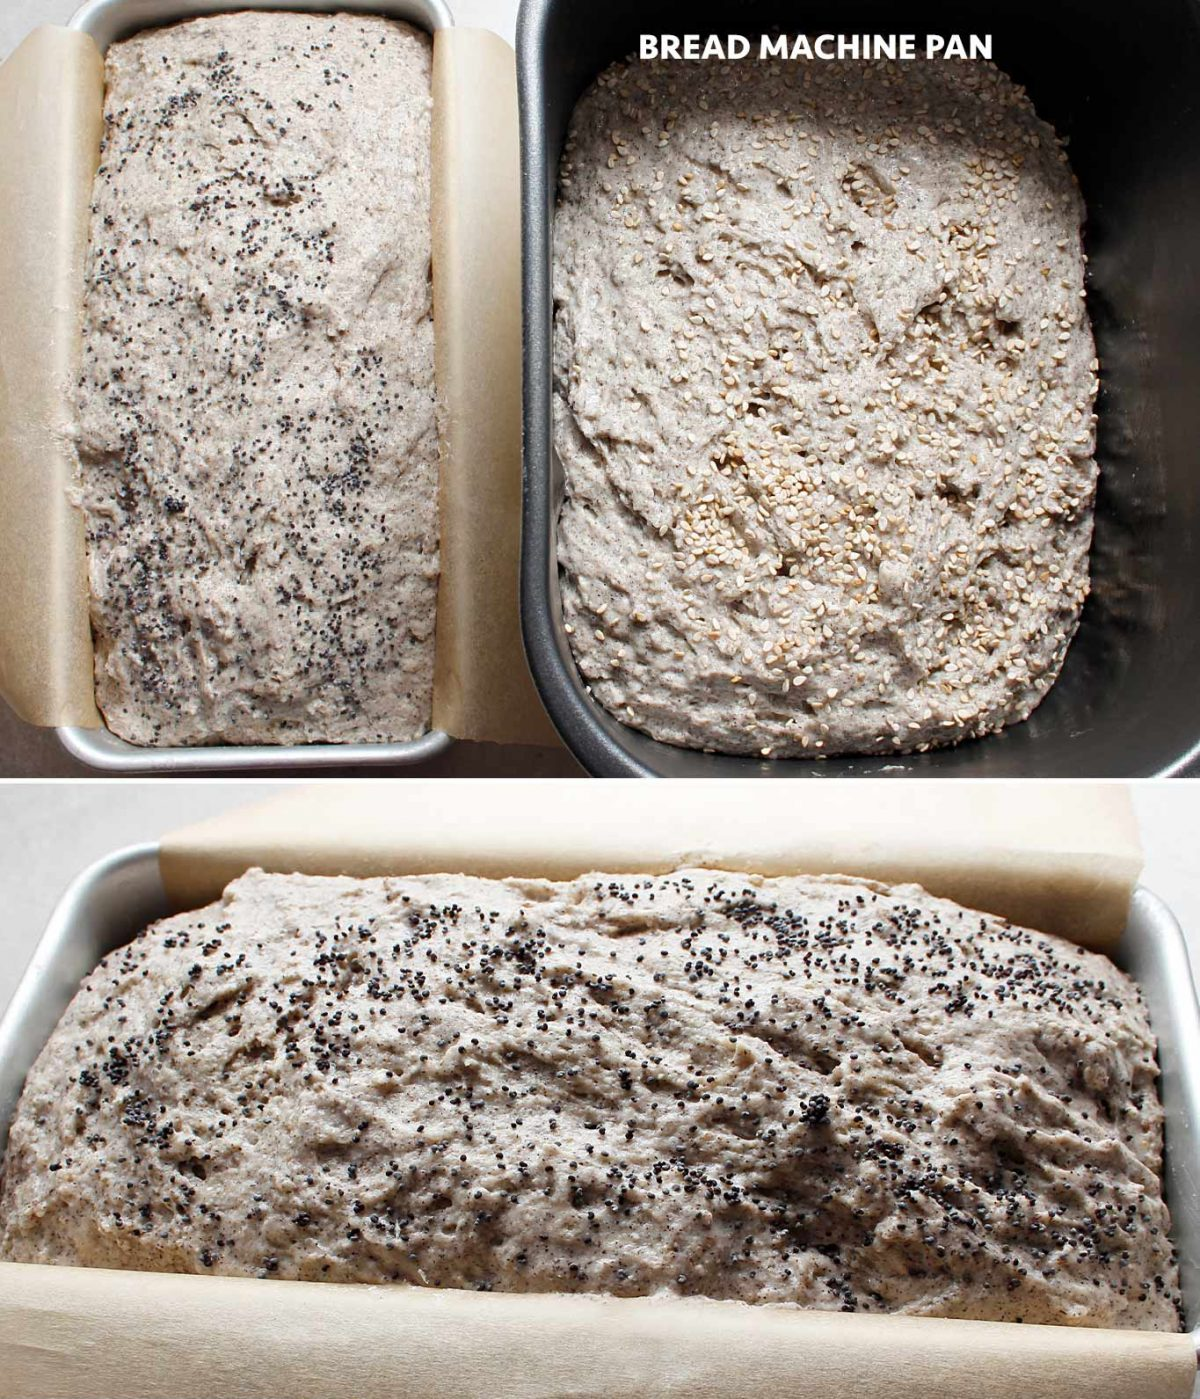 The GF vegan bread dough mixture in the pan for the oven and the pan for the bread machine.